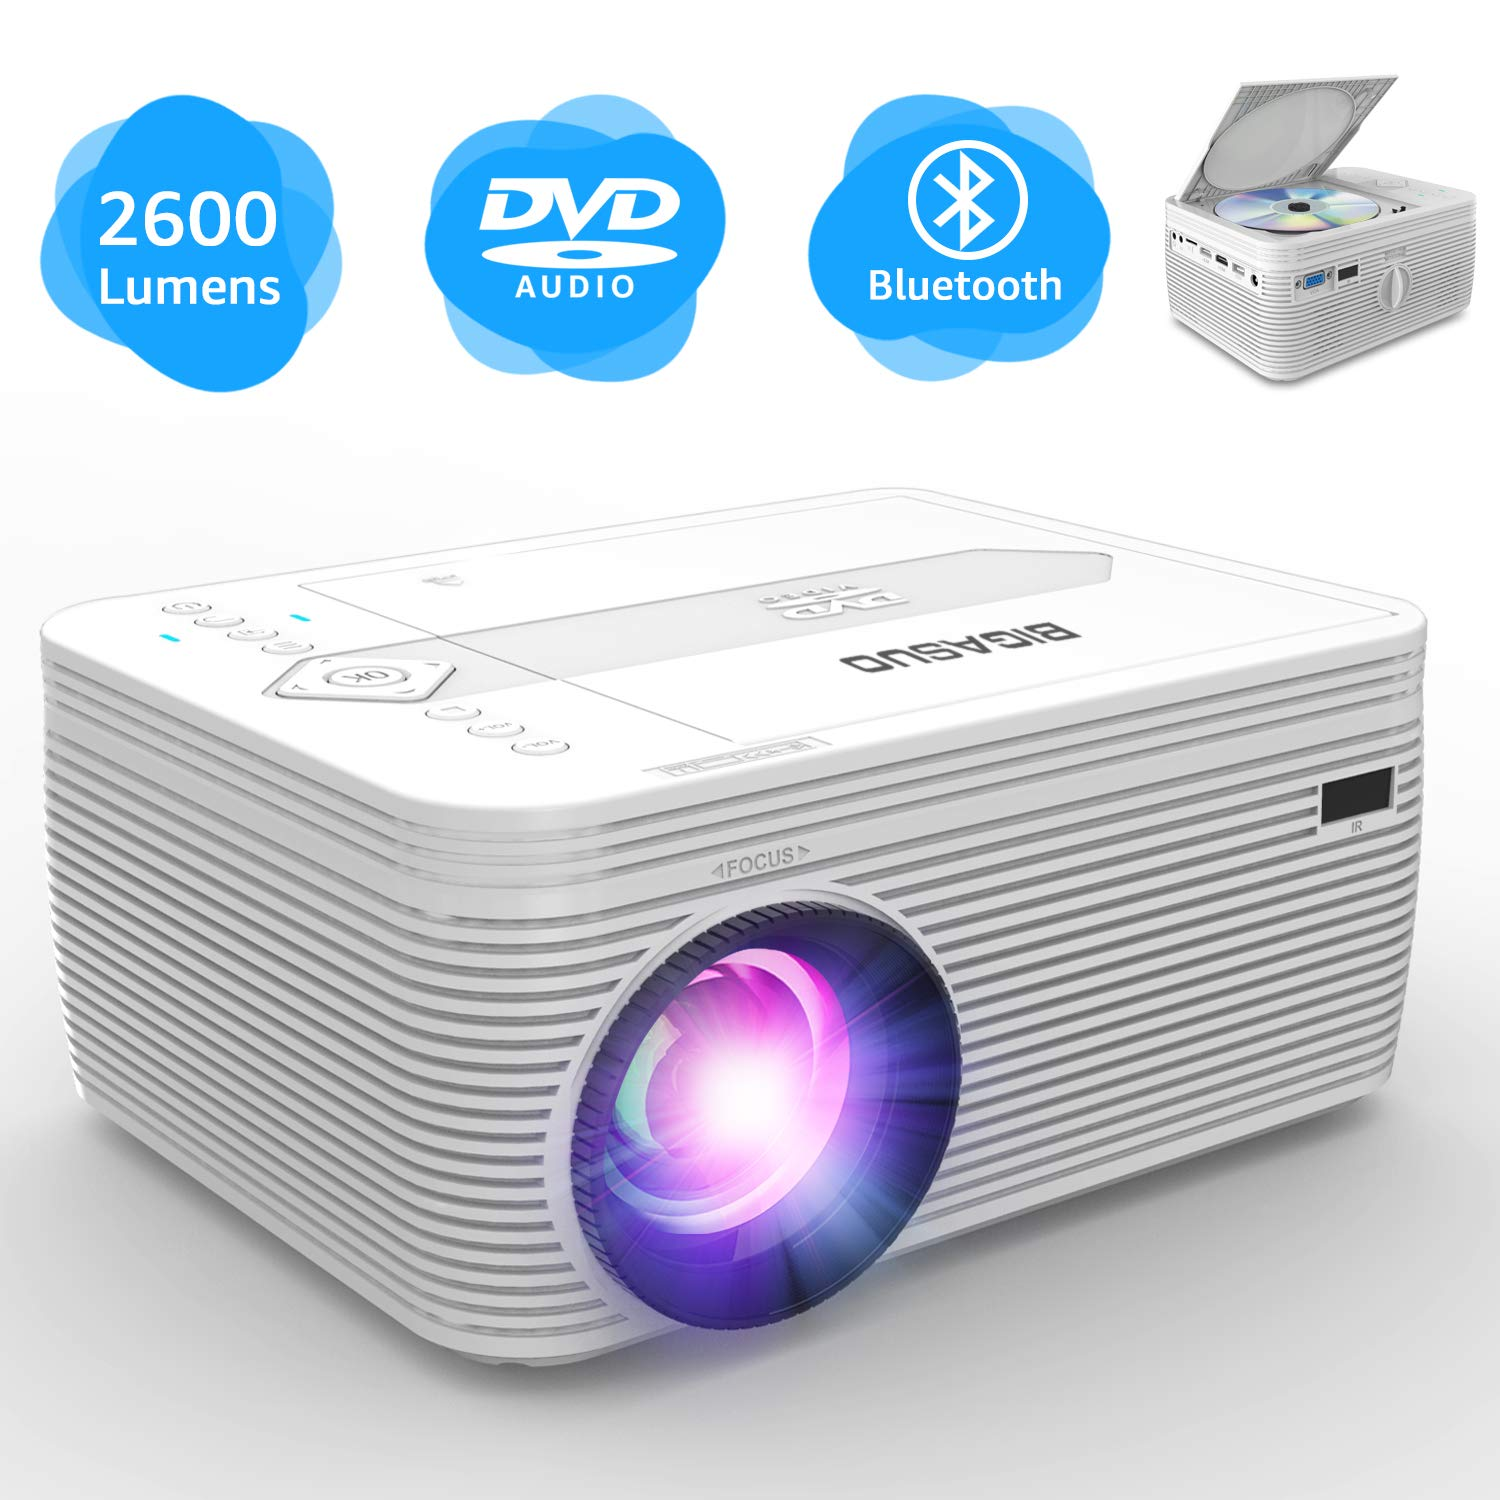 BIGASUO Projector with DVD Player, Portable Bluetooth Projector 2600 Lumens Built in DVD Player, Mini Projector Compatible with Fire TV Stick, PS4, Xbox, 170'' Display, 1080P Supported